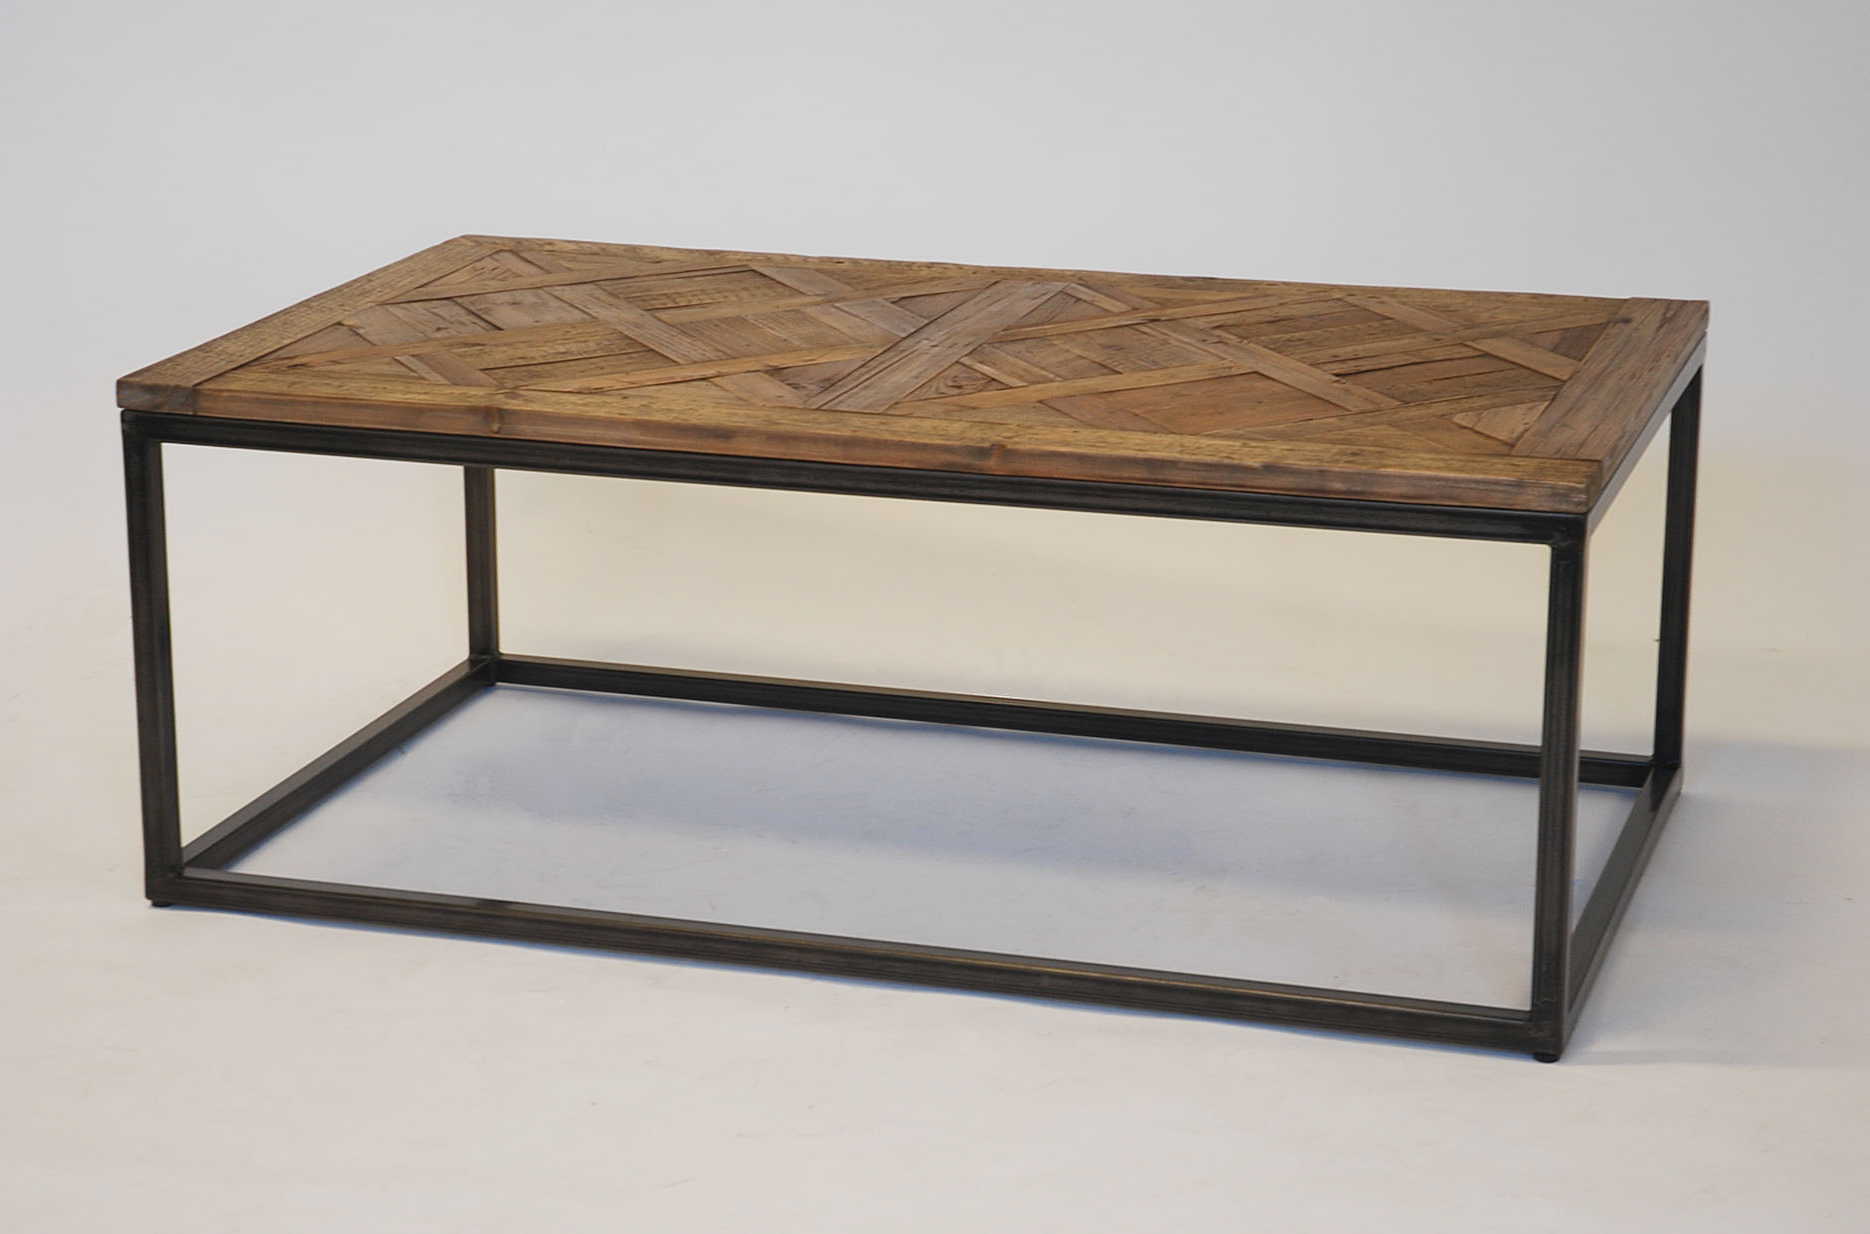 Hire & Rental With Regard To Parquet Coffee Tables (View 6 of 20)